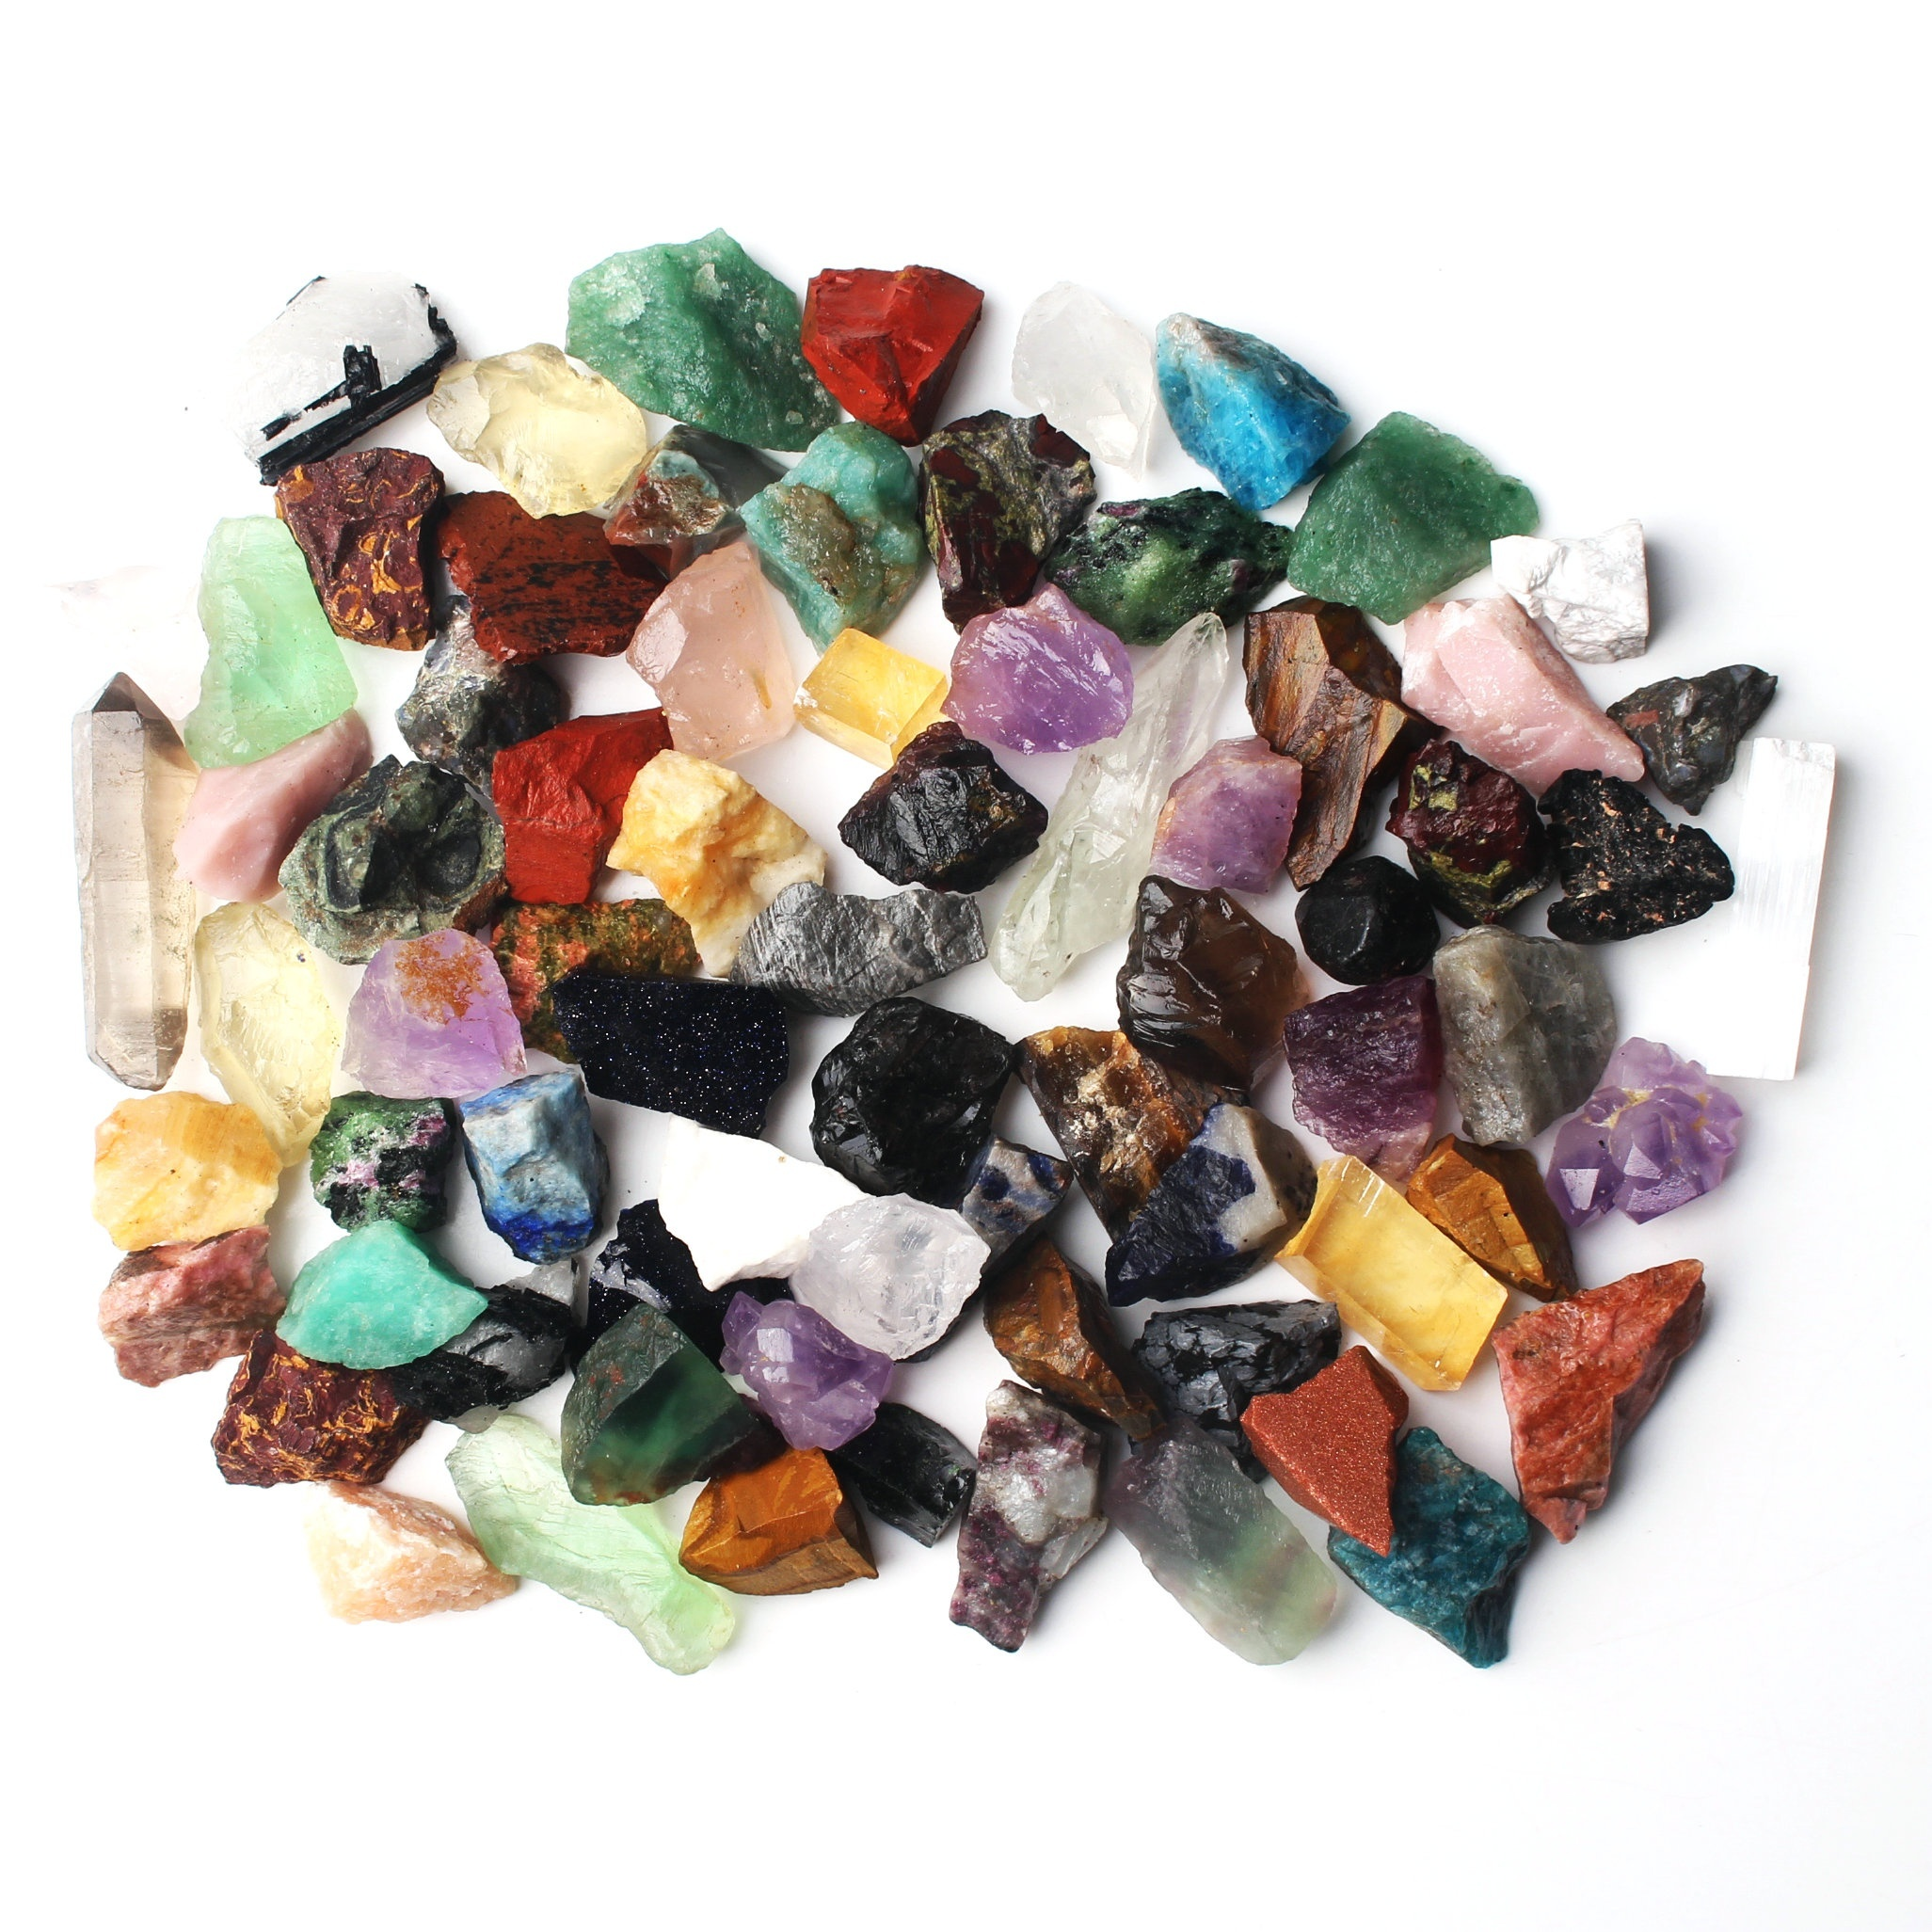 100 200 300g Lot Bulk Mixed Crafters Gems Crystal Natural Rough Raw Mineral Rocks Collection Stone